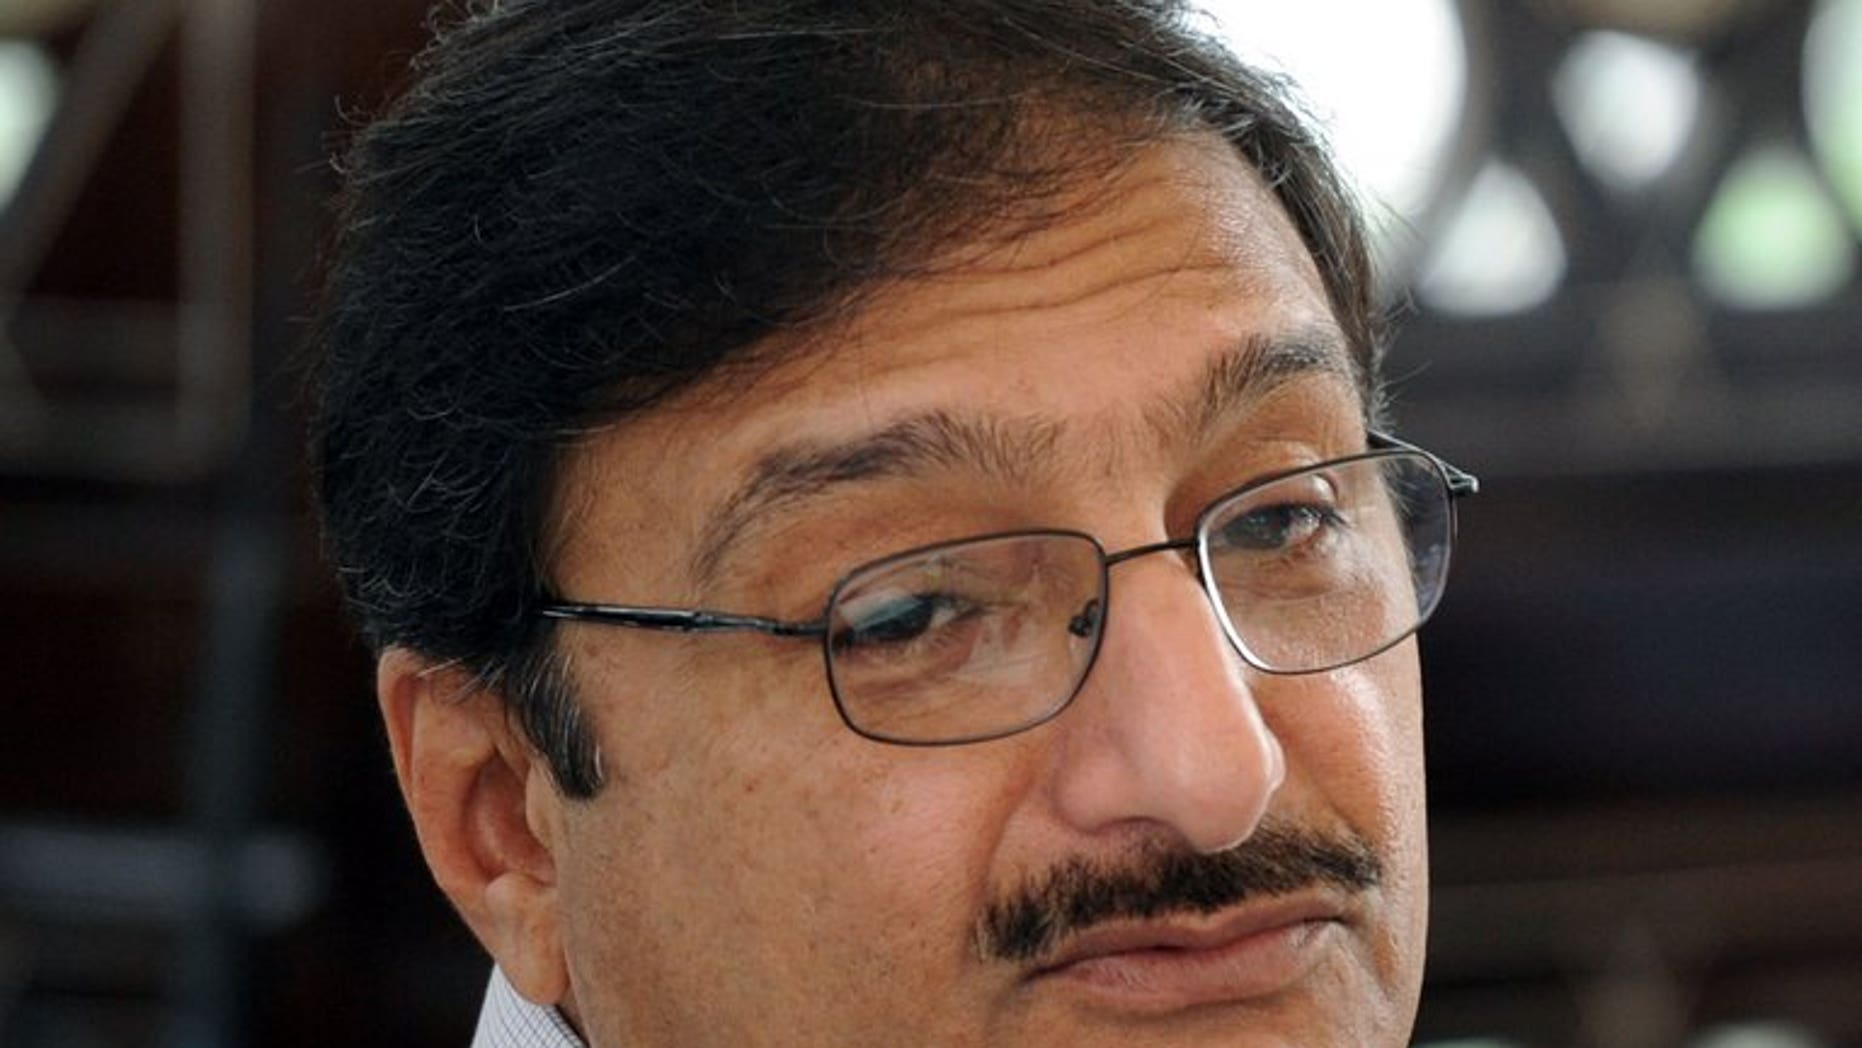 Zaka Ashraf speaks at a press conference in Dubai last year. A Pakistani court Wednesday ordered the government to appoint an interim head of the cricket board, after the current chairman was suspended over a legal challenge to his election.